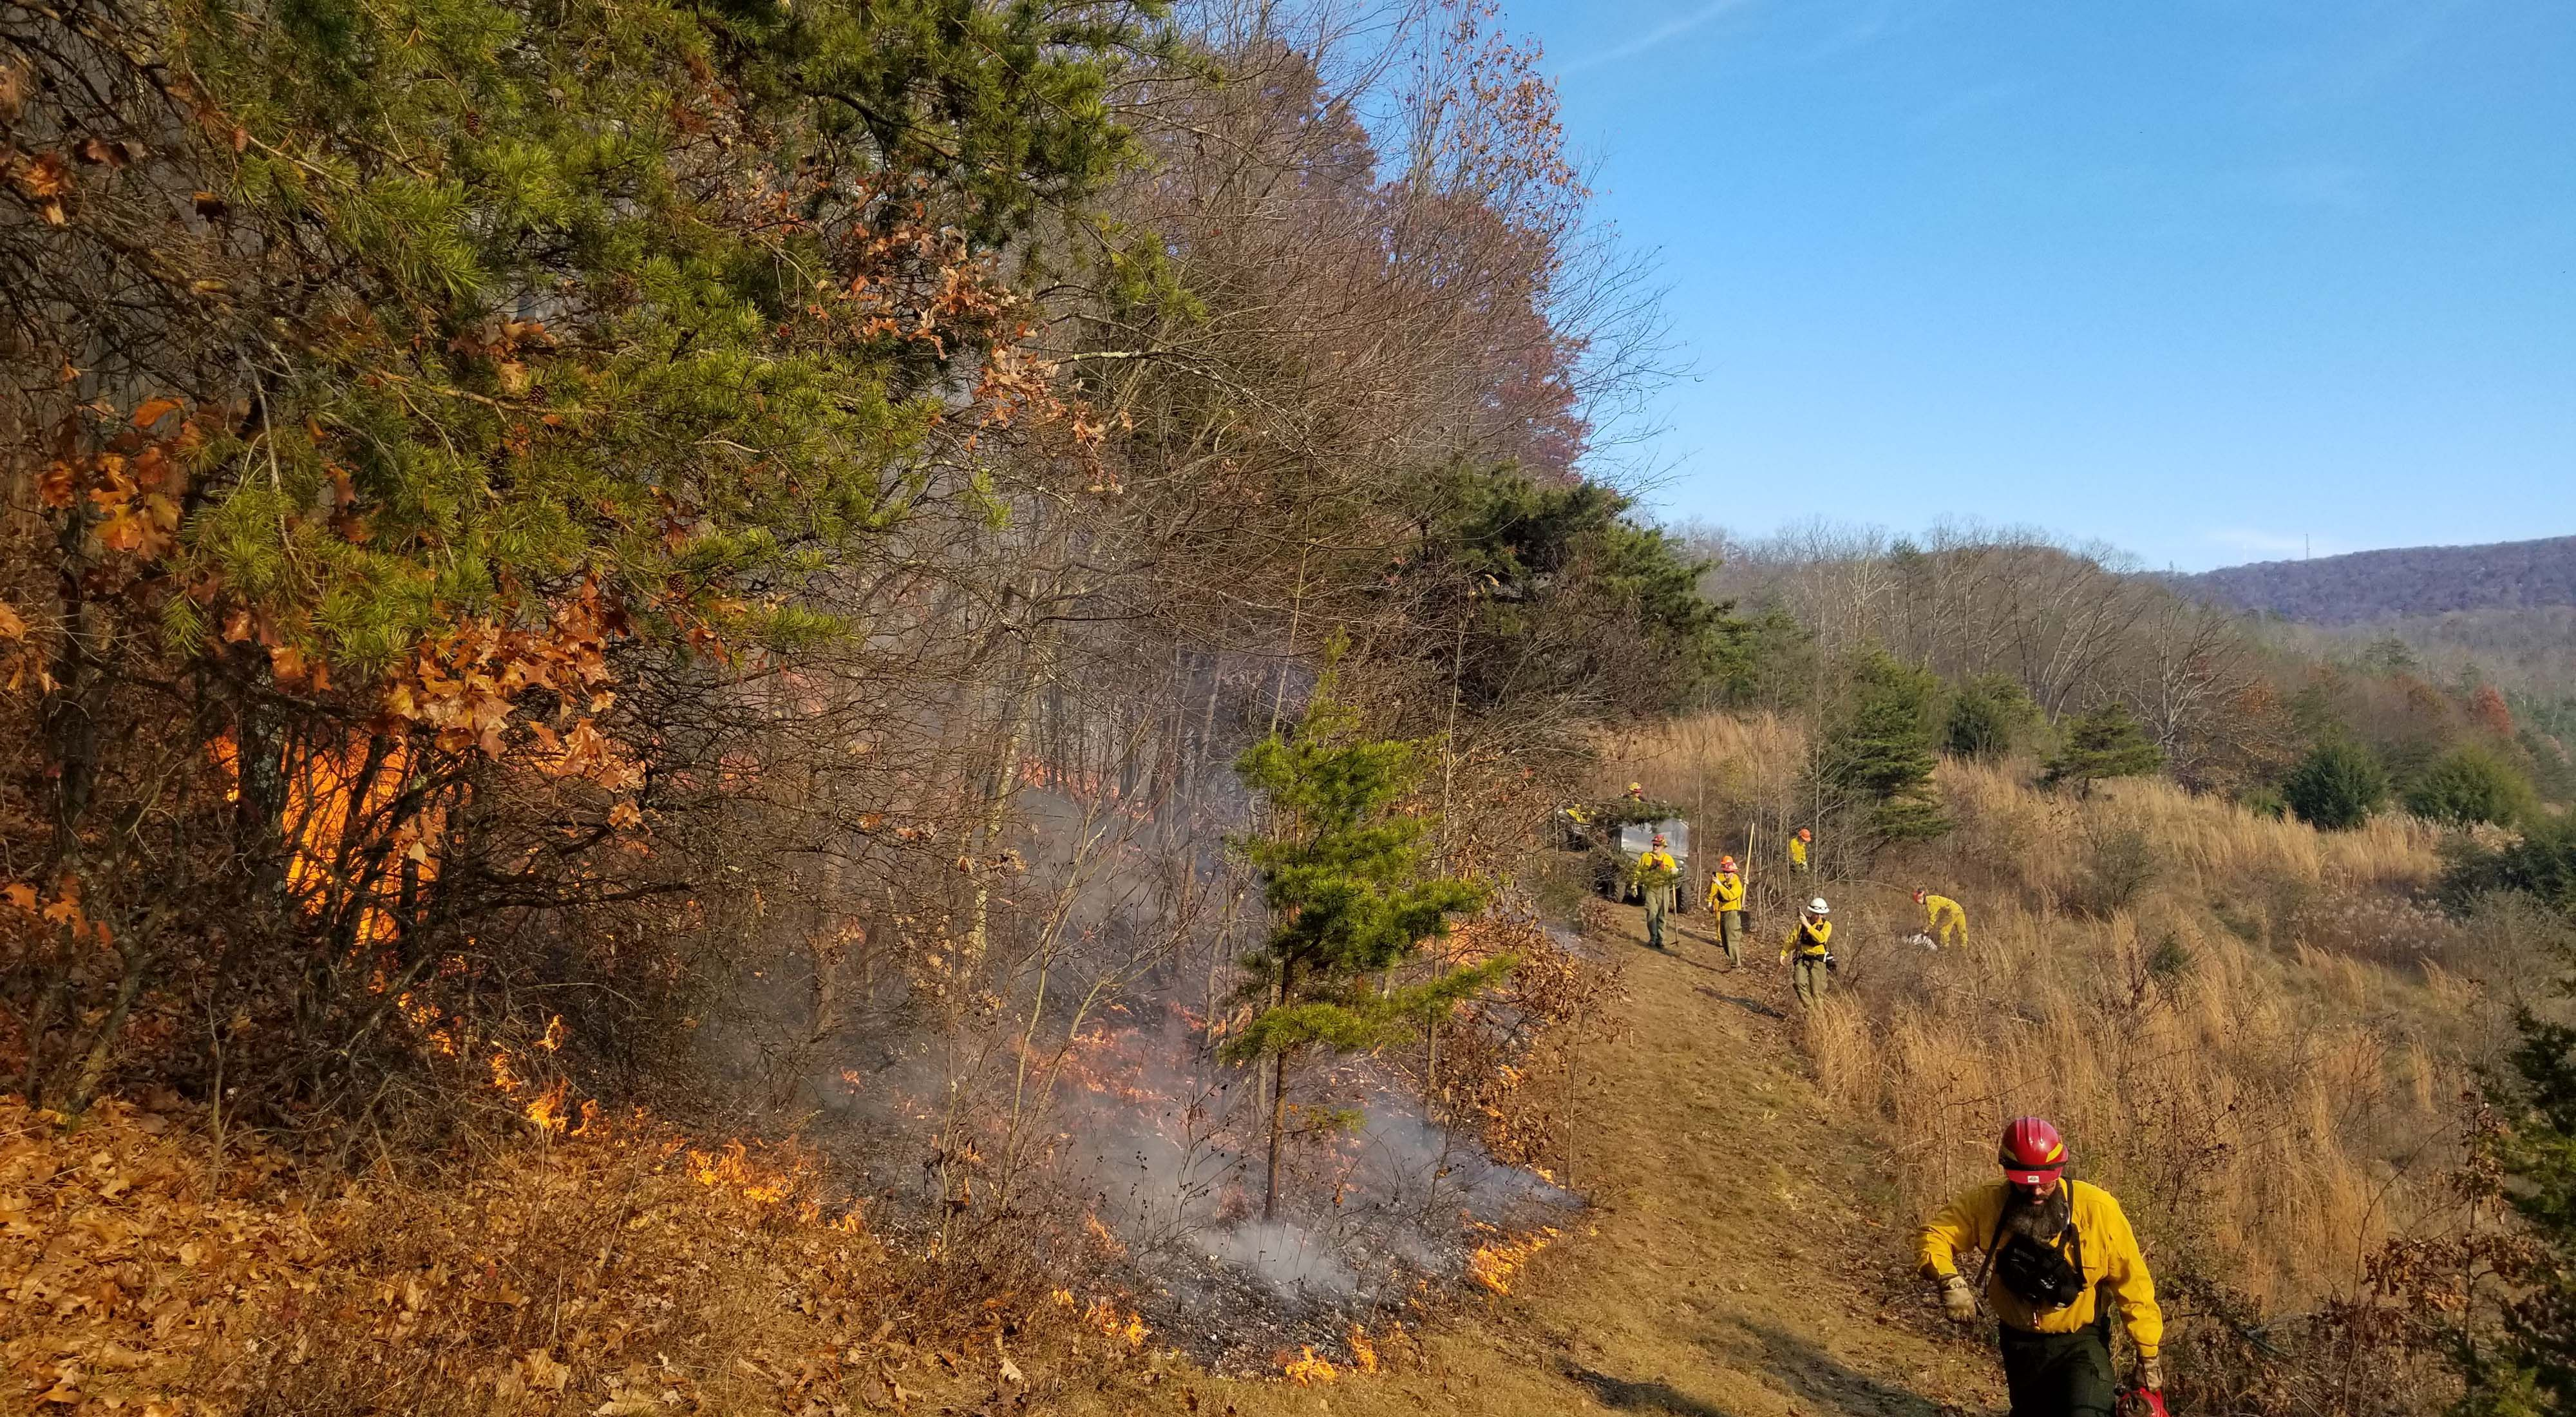 Low intensity fire moves up a wooded slope as seven members of a TNC crew monitor the fire line during a controlled burn.